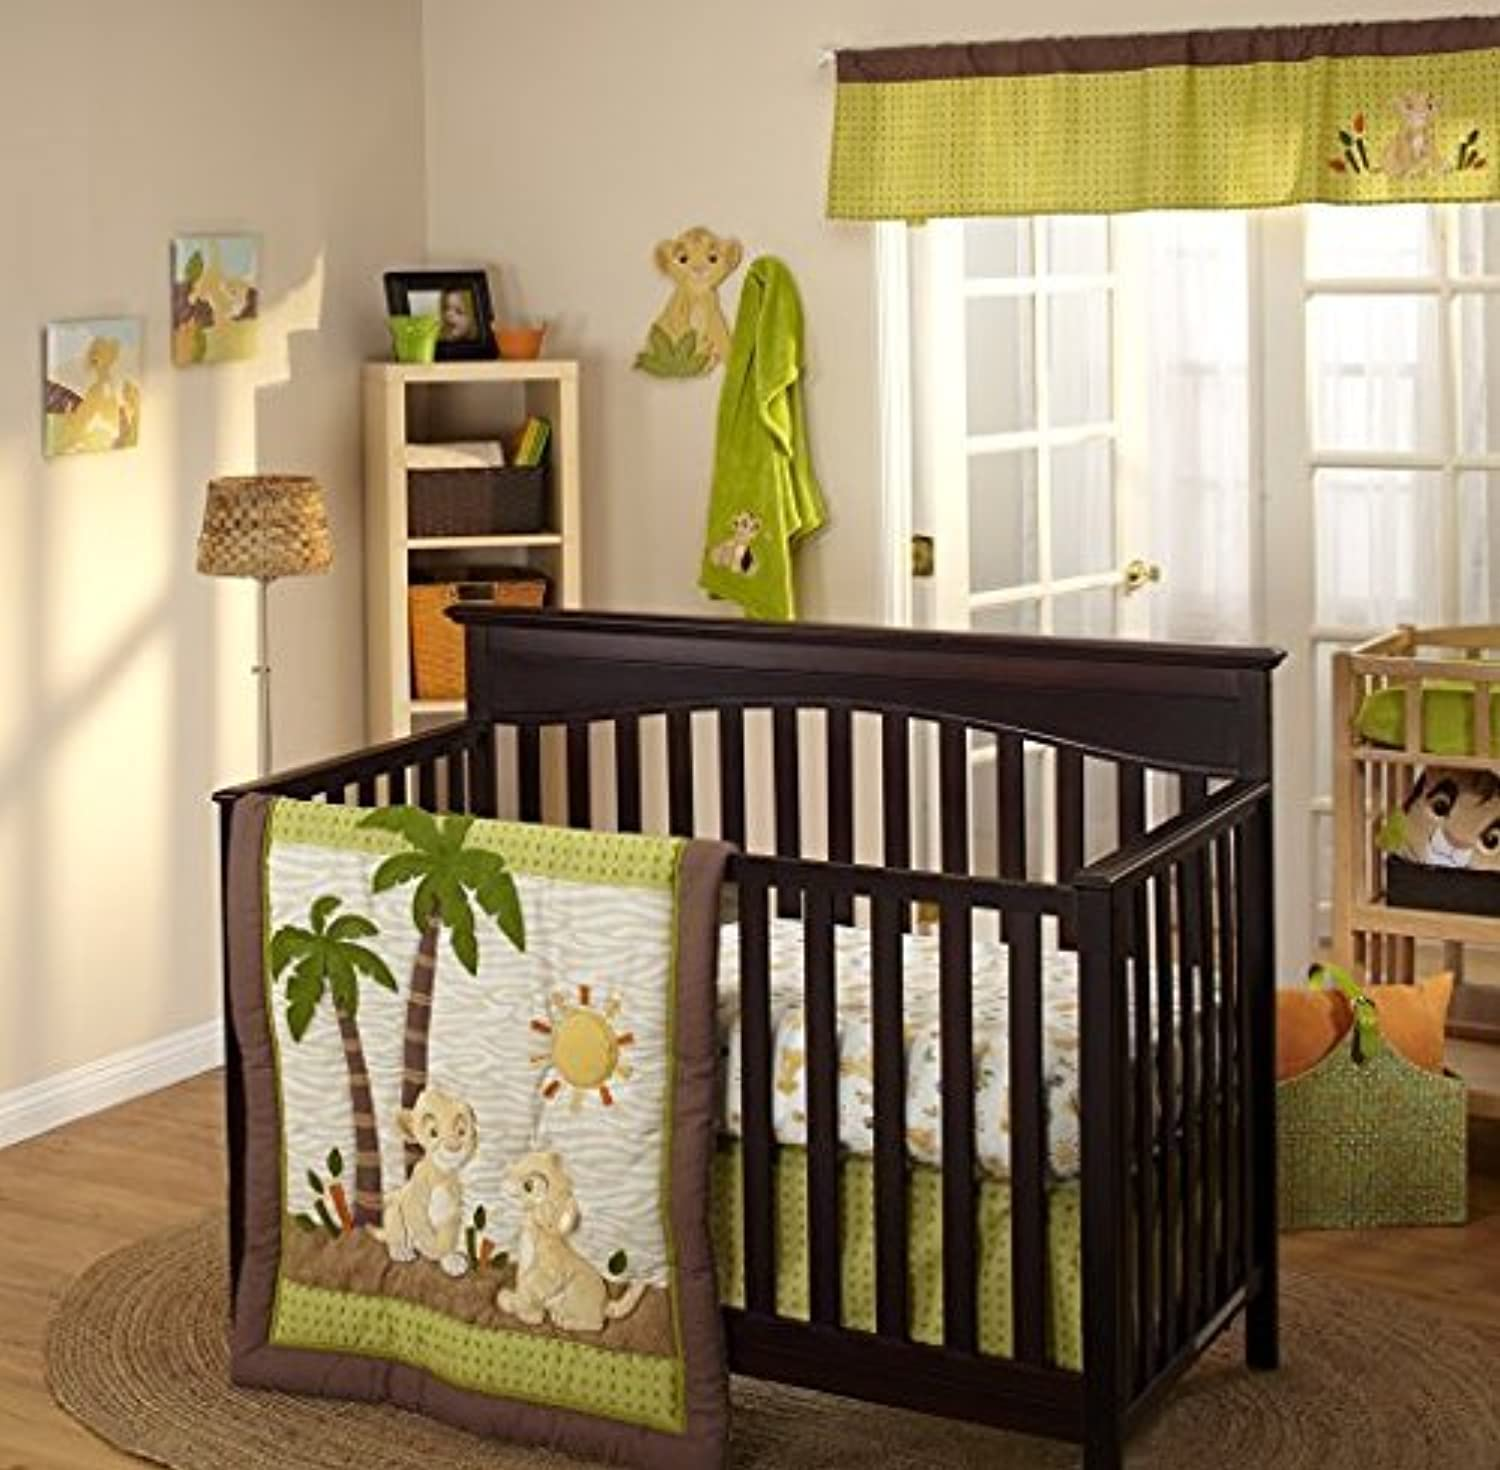 5-Pieces Disney Lion King Wild About You Crib Bedding and Bumper Set [並行輸入品]